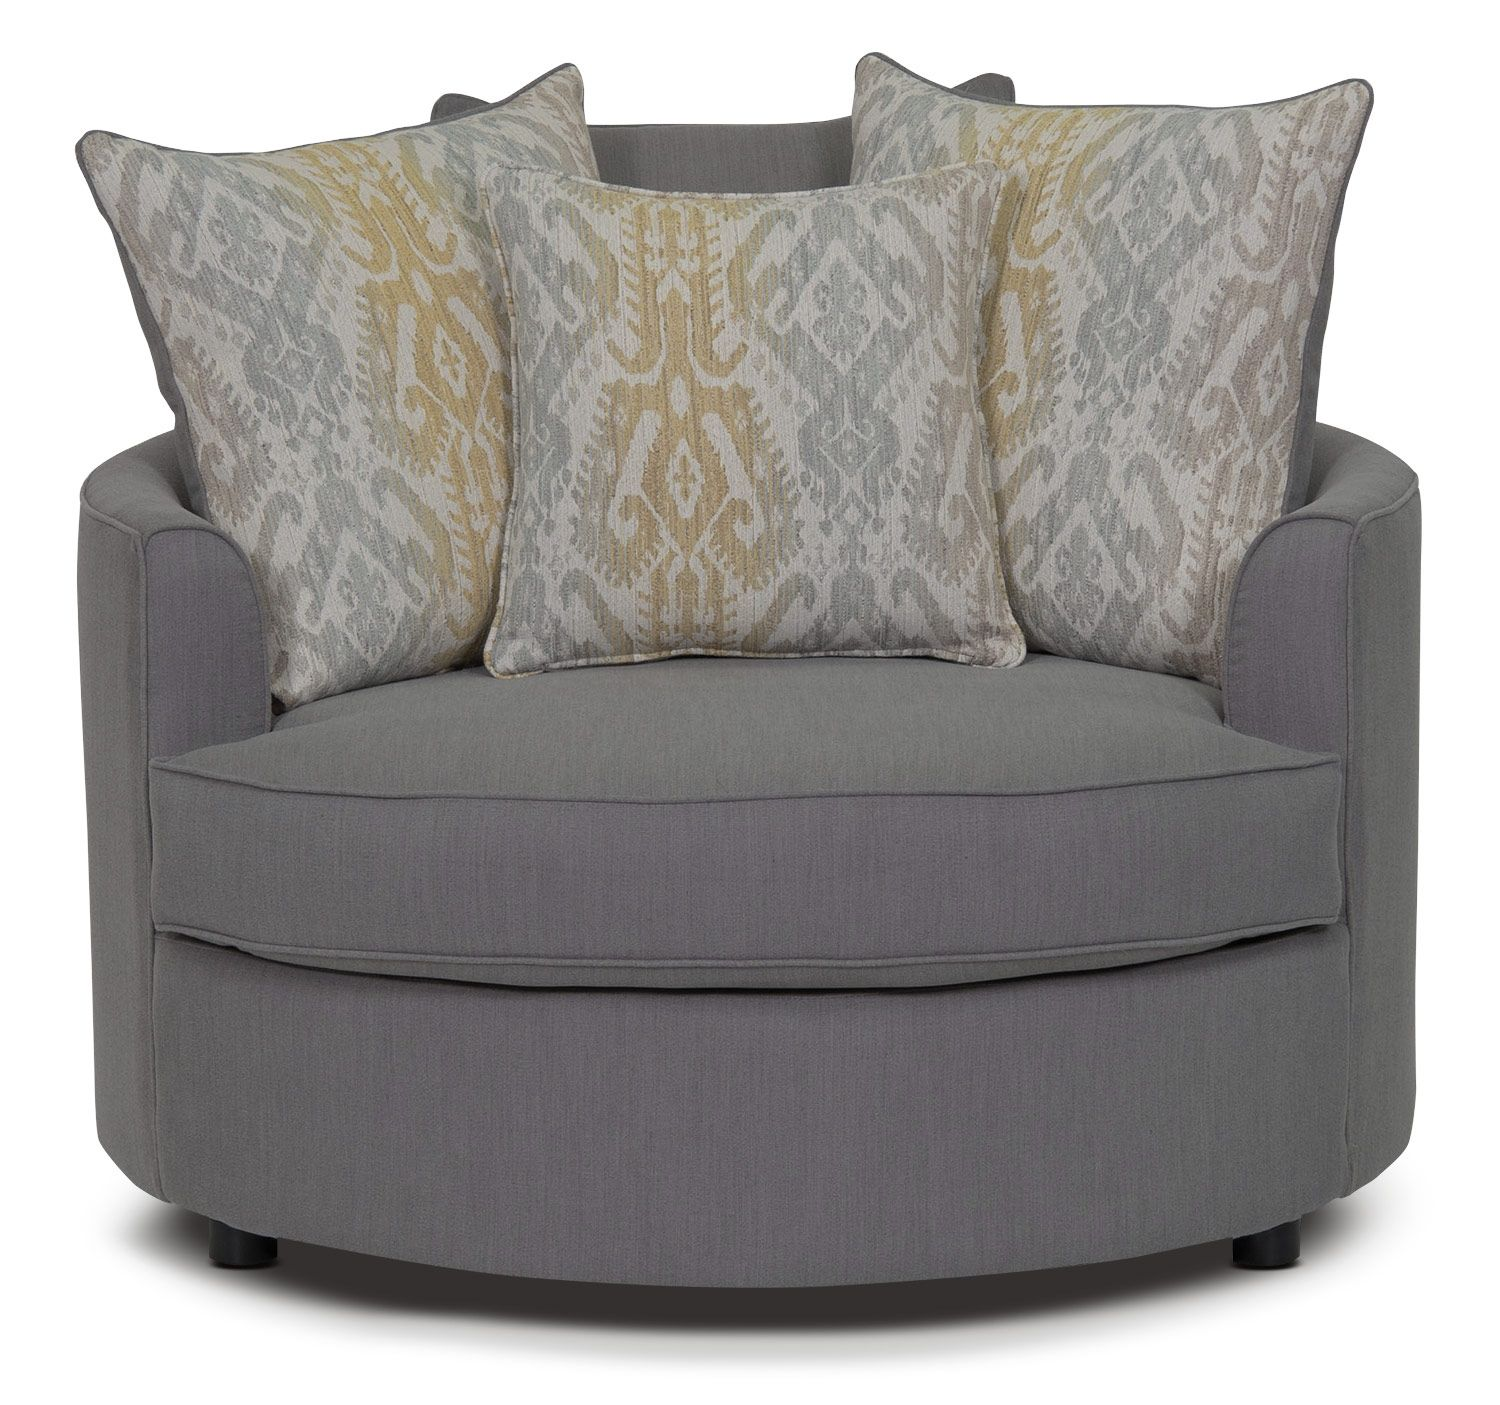 Offer A Dignified And Tasteful Living Room To Your Guests With This Julia  Nesting Chair.